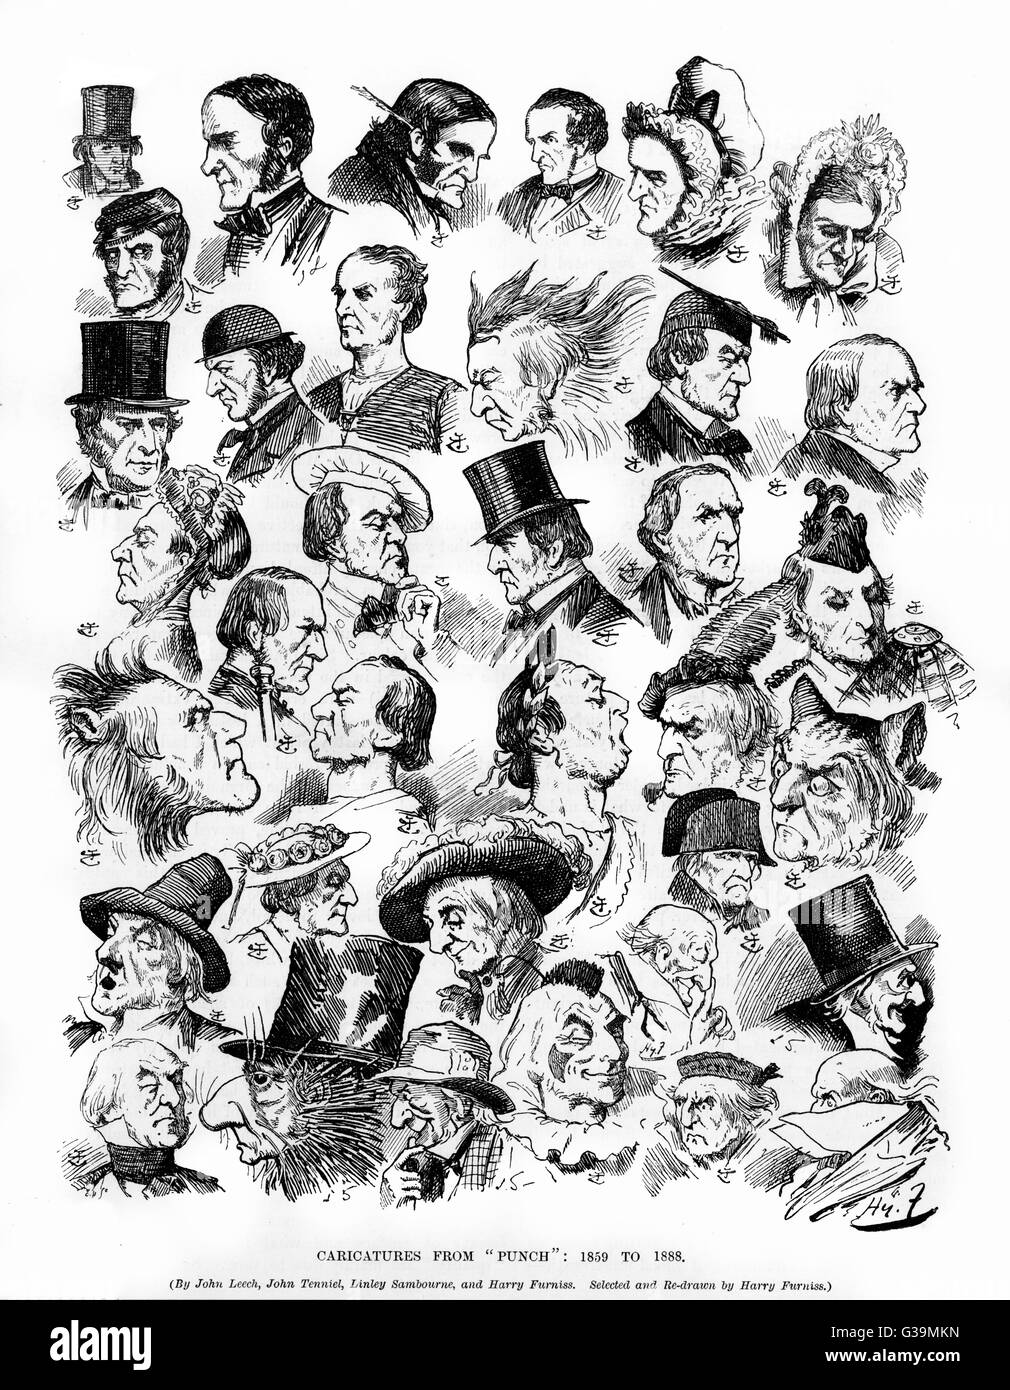 WILLIAM EWART GLADSTONE  Various caricatures of the  Liberal MP and Prime Minister  from 1859 to 1888, by various - Stock Image